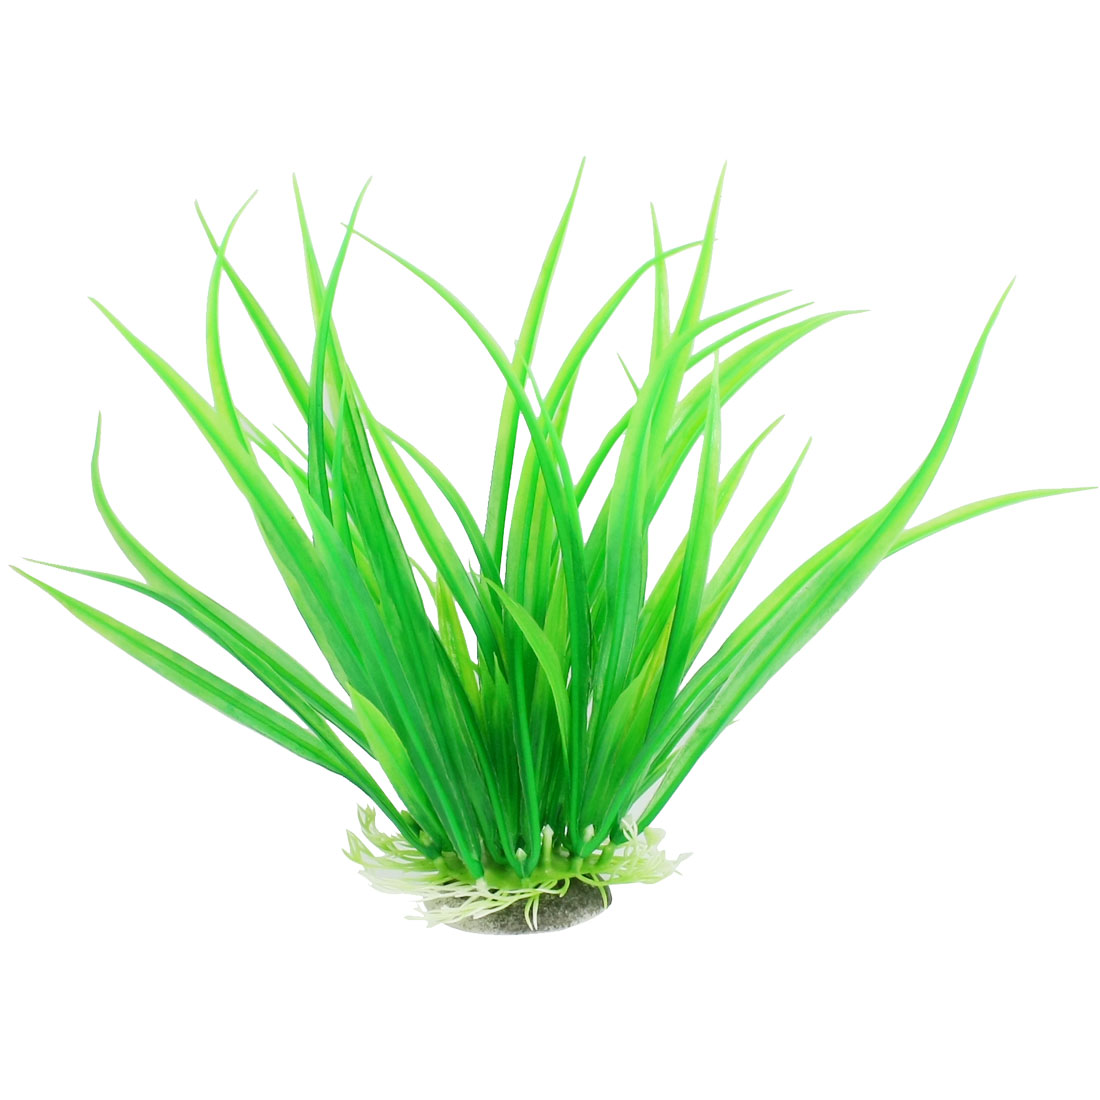 "Ceramic Base Green Plastic Plant Grass 7.9"" for Aquarium Fish Tank"